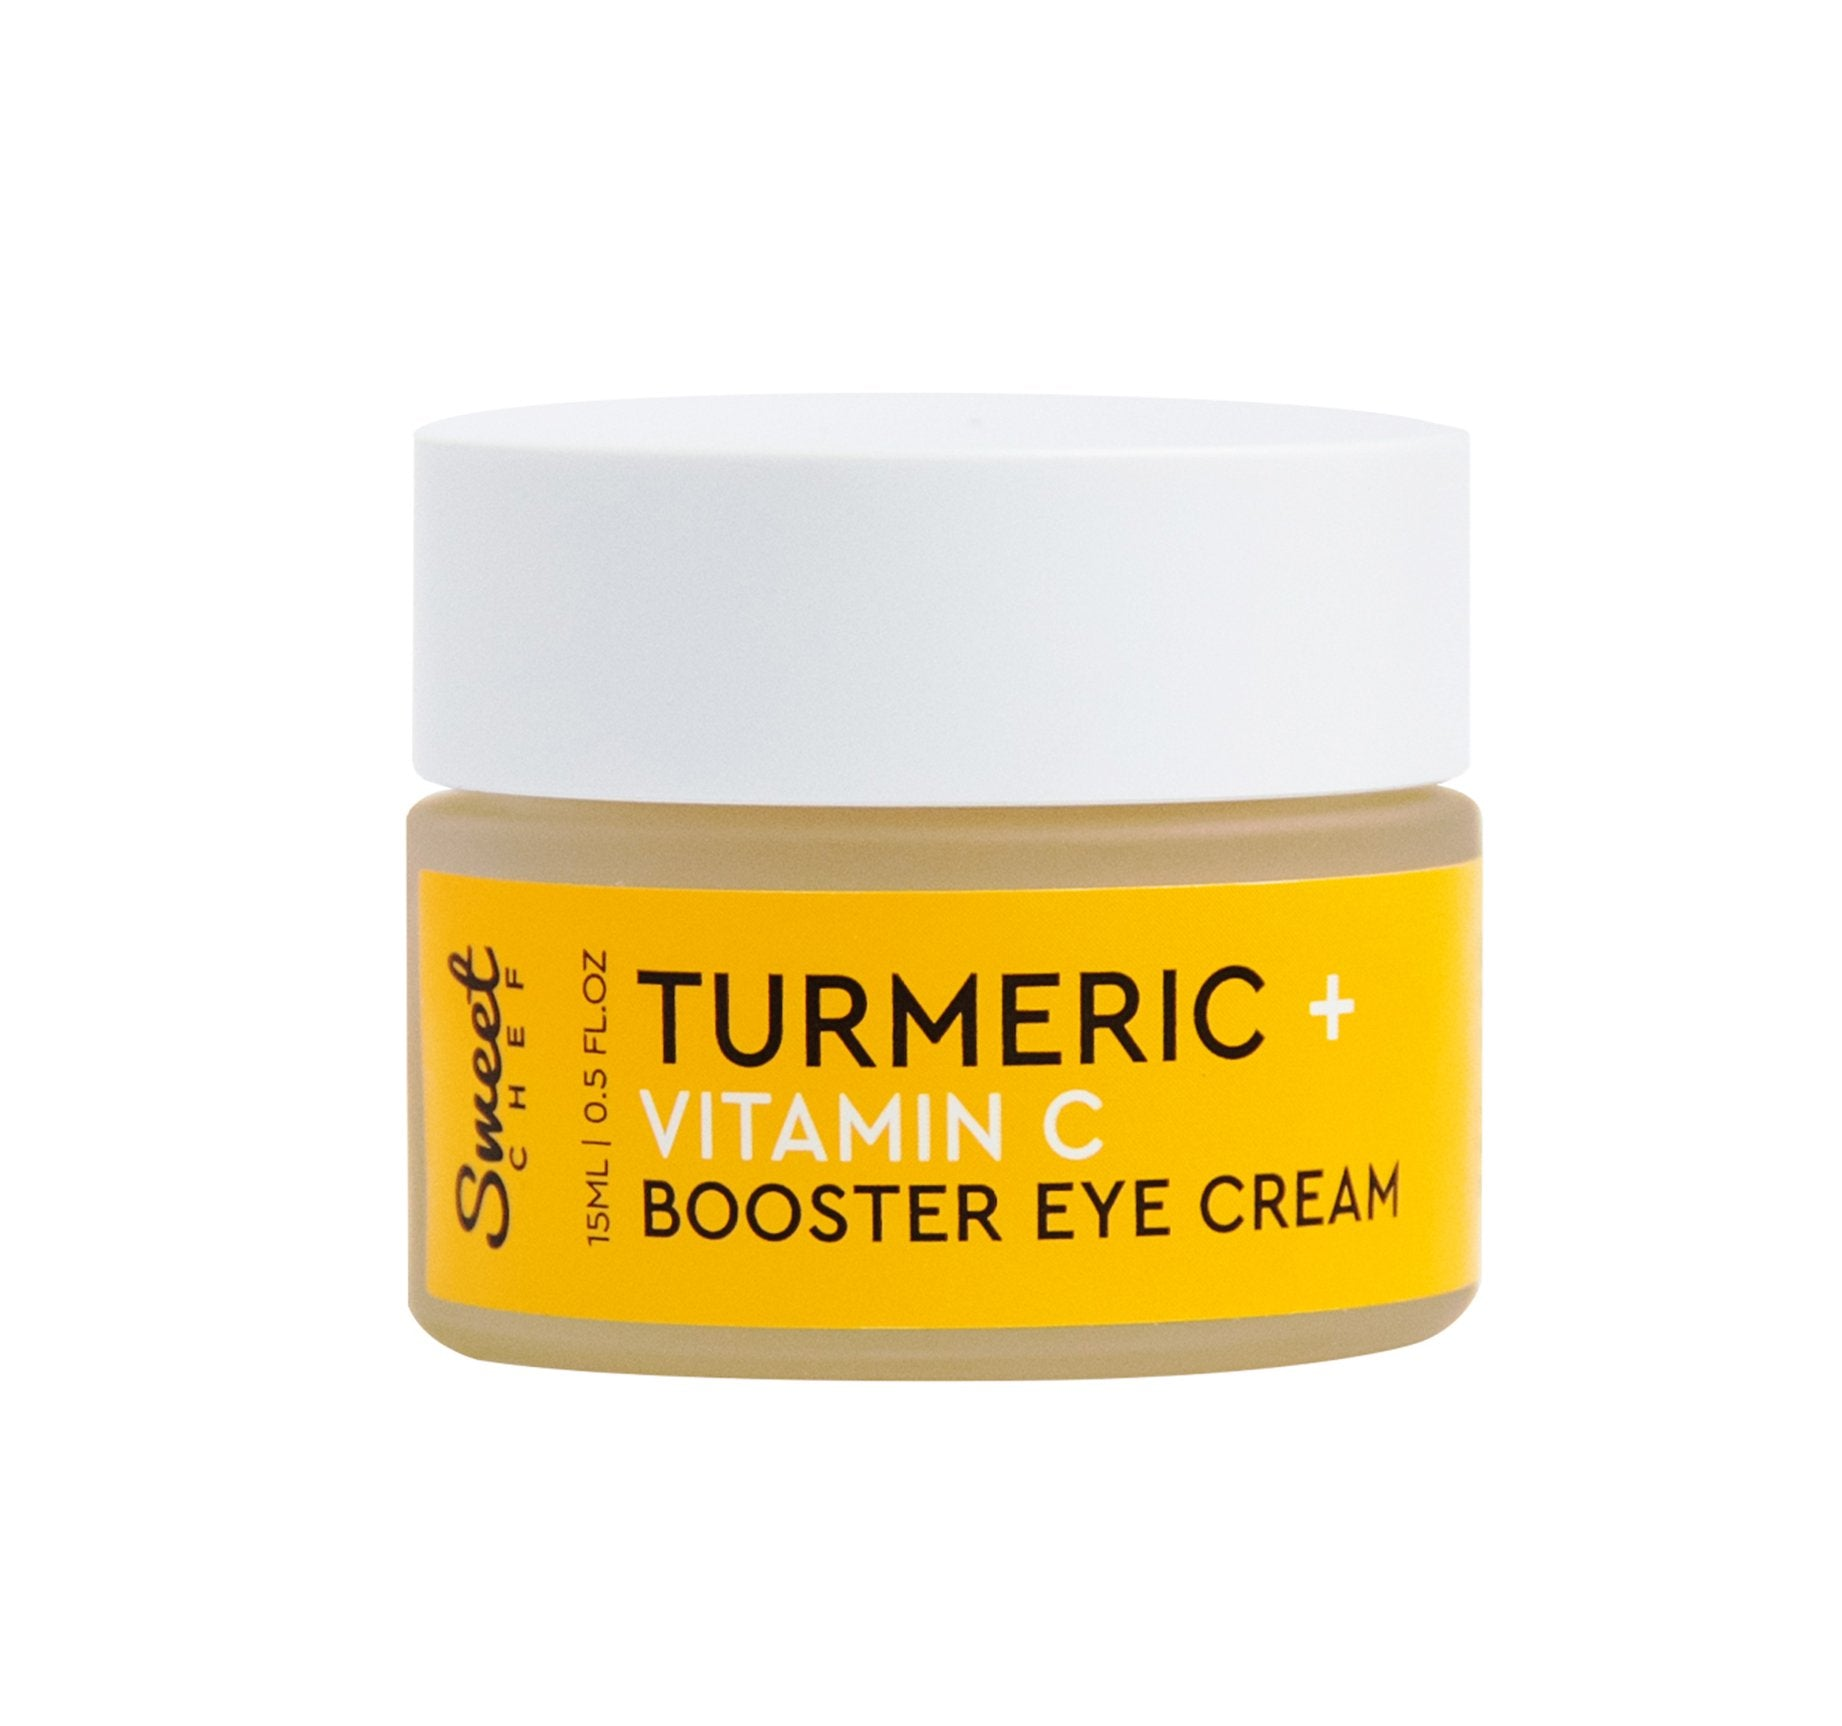 TURMERIC + VITAMIN C BOOSTER EYE CREAM, view larger image